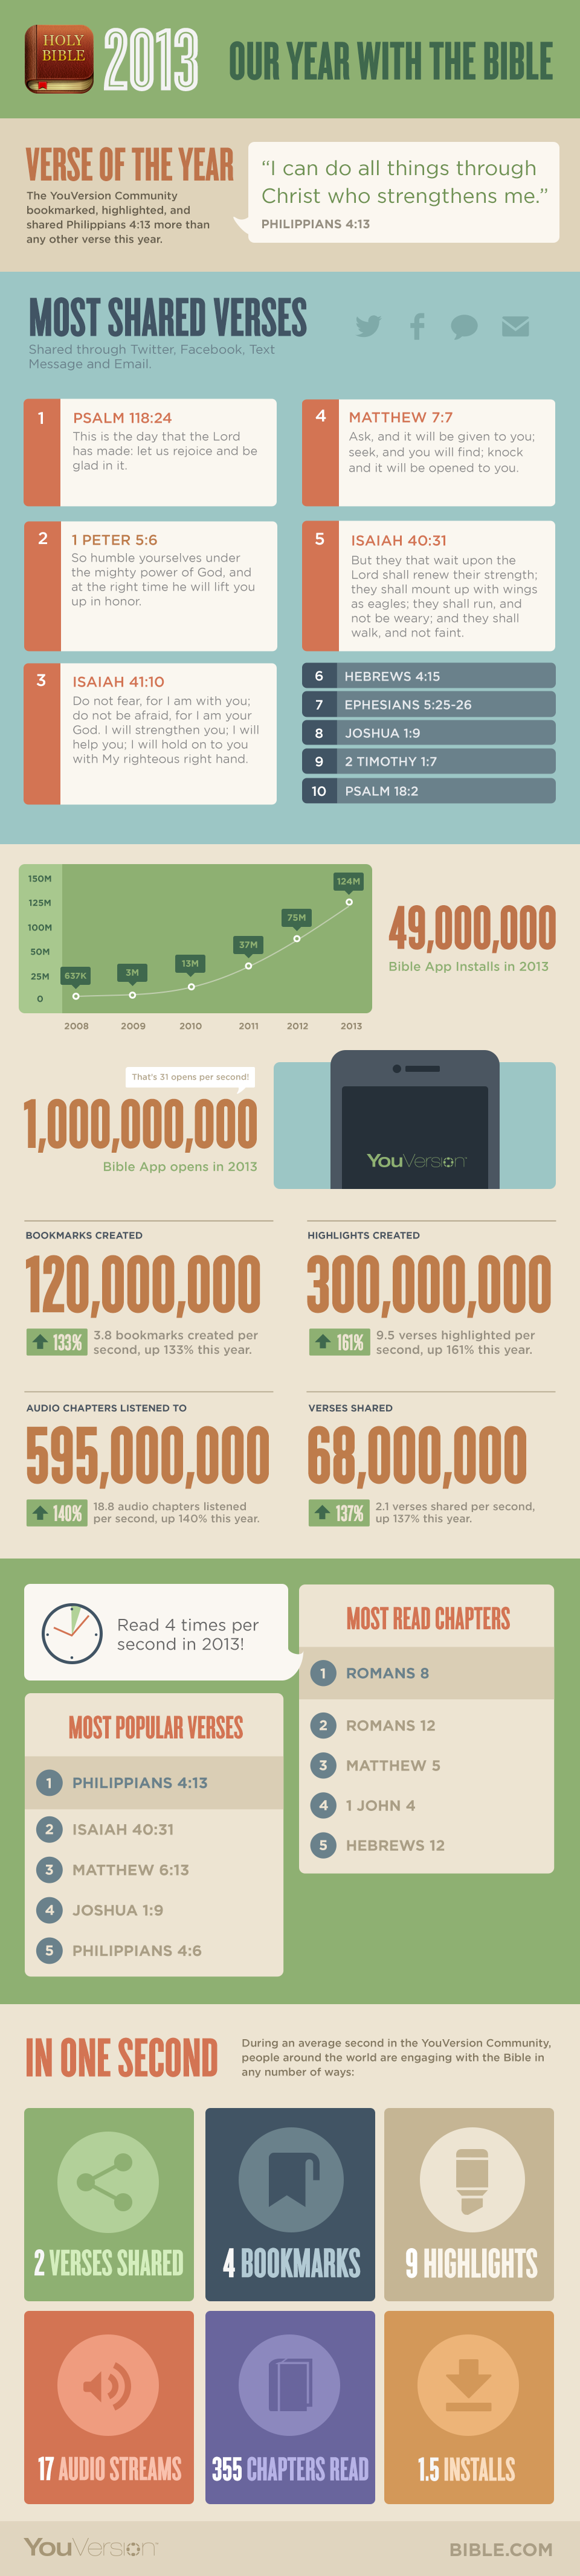 Our Year with the Bible - Infographic